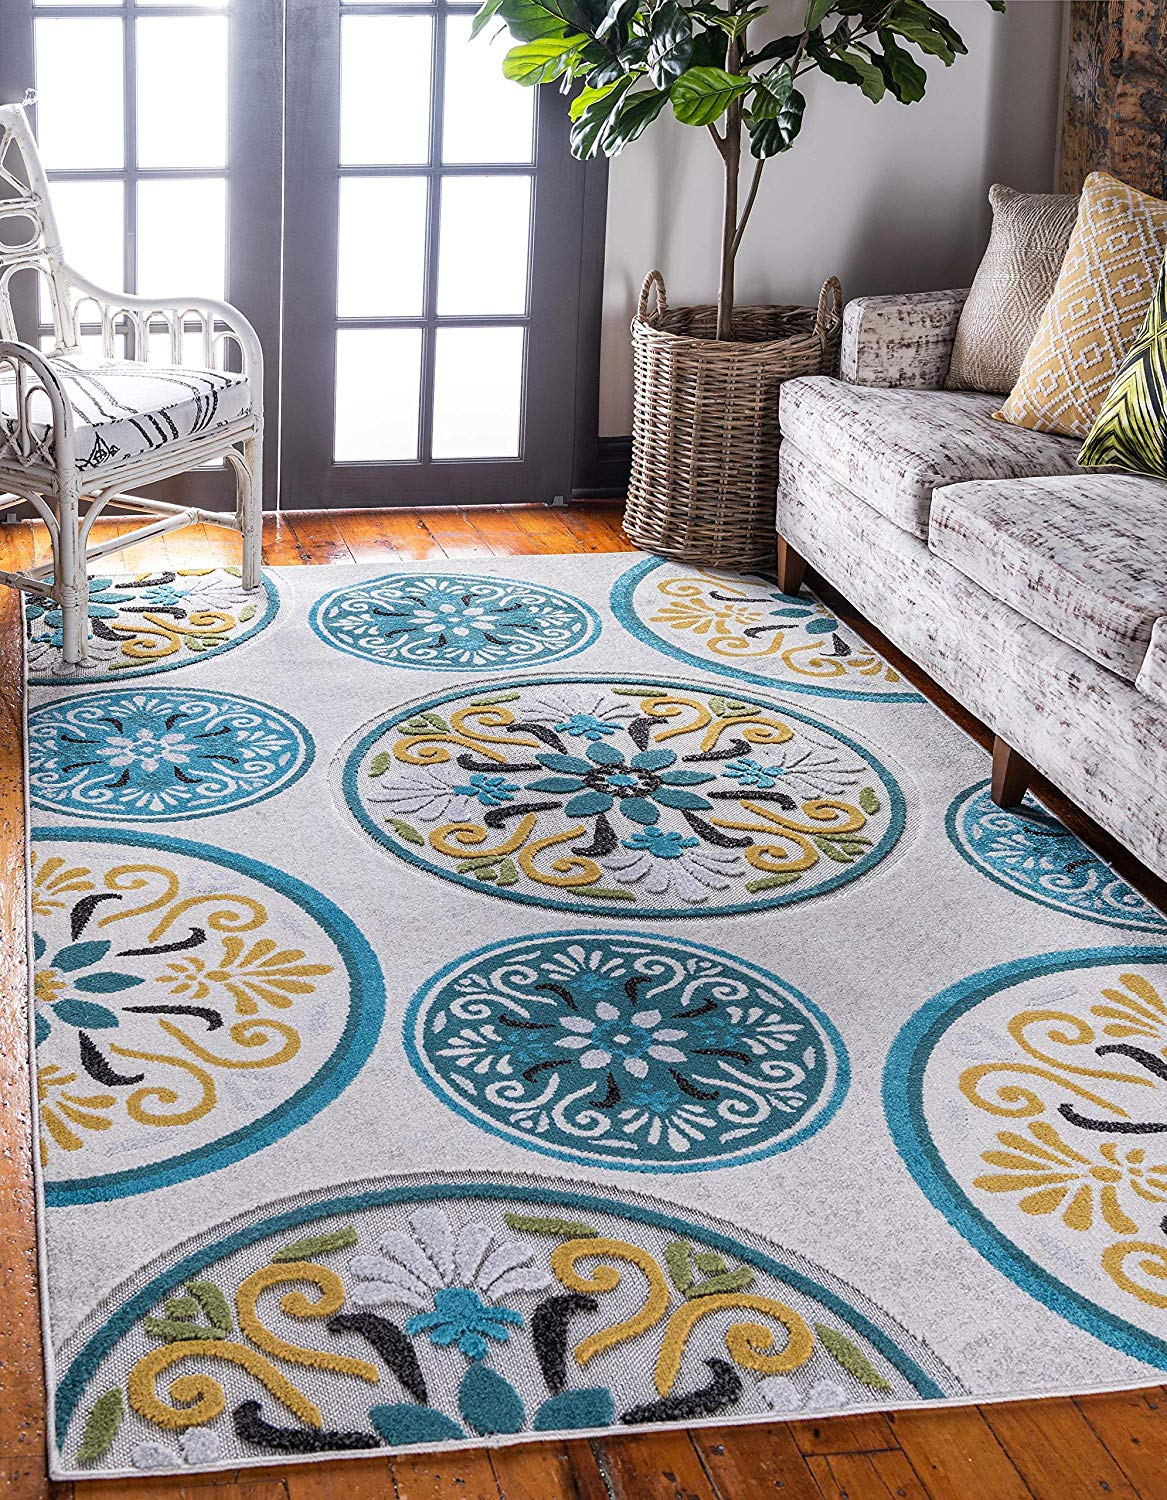 Cheap Modern Outdoor Rug Find Modern Outdoor Rug Deals On Line At